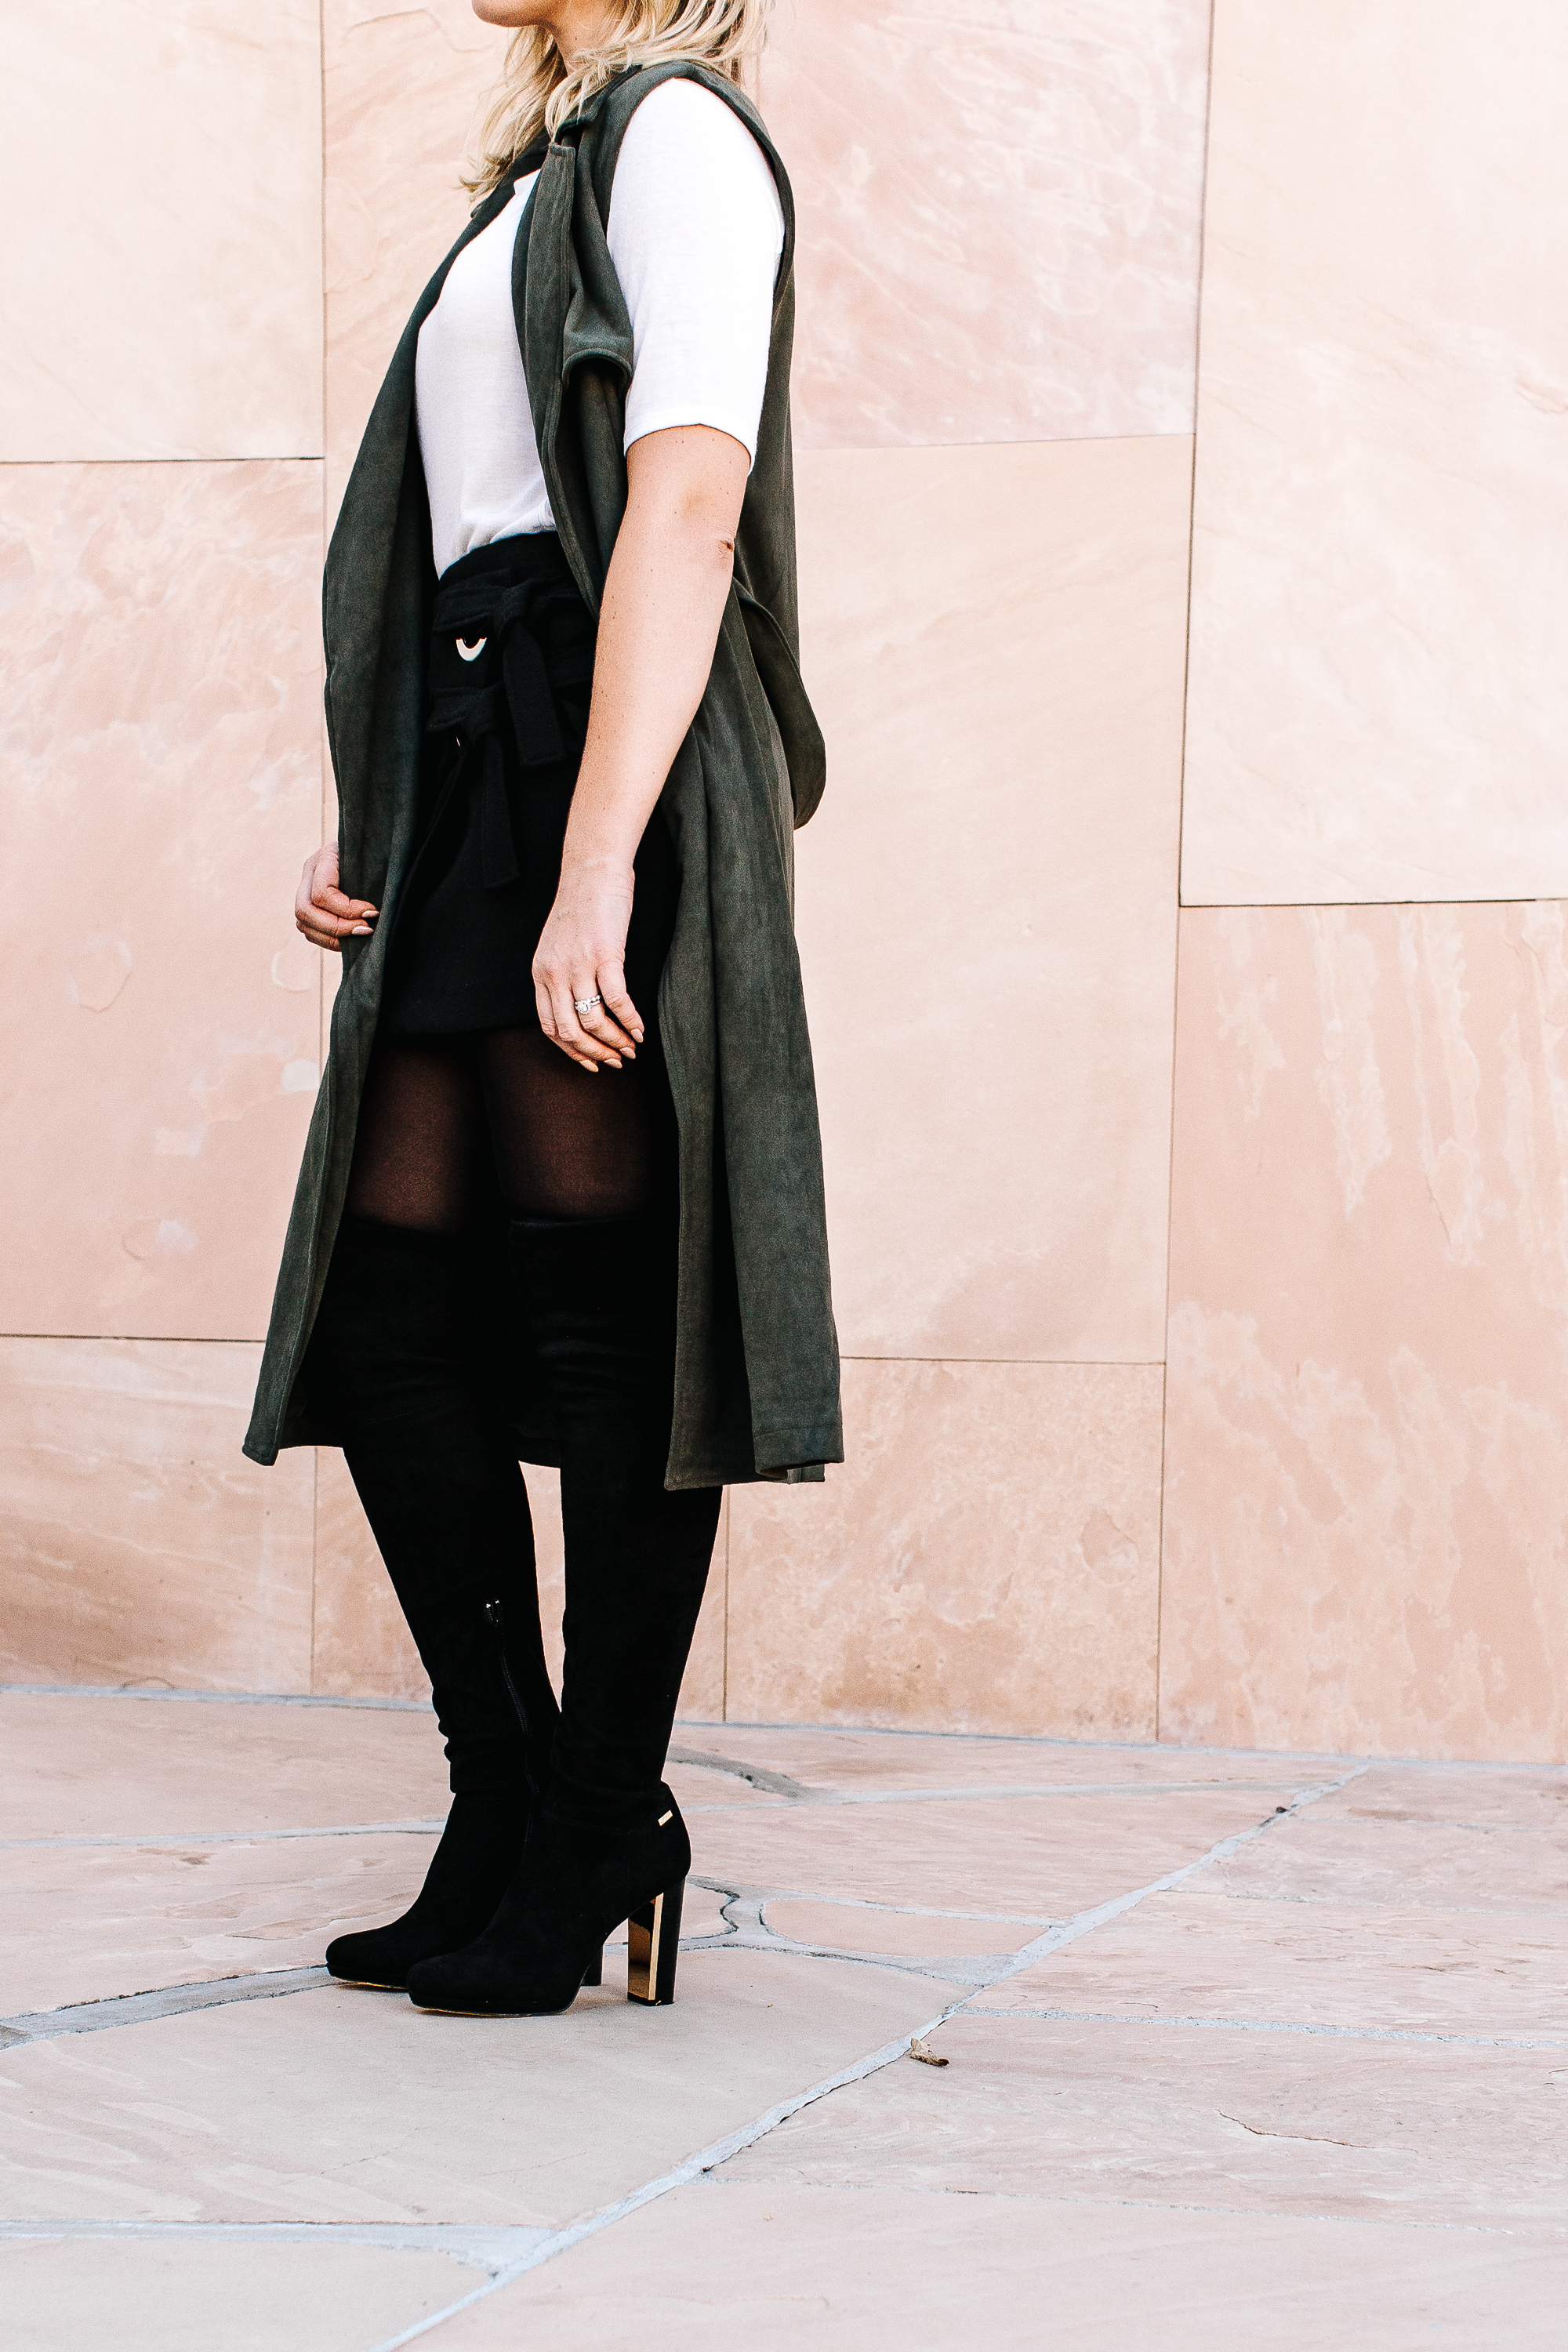 trish-taylor-green-suede-duster-and-thigh-high-boots